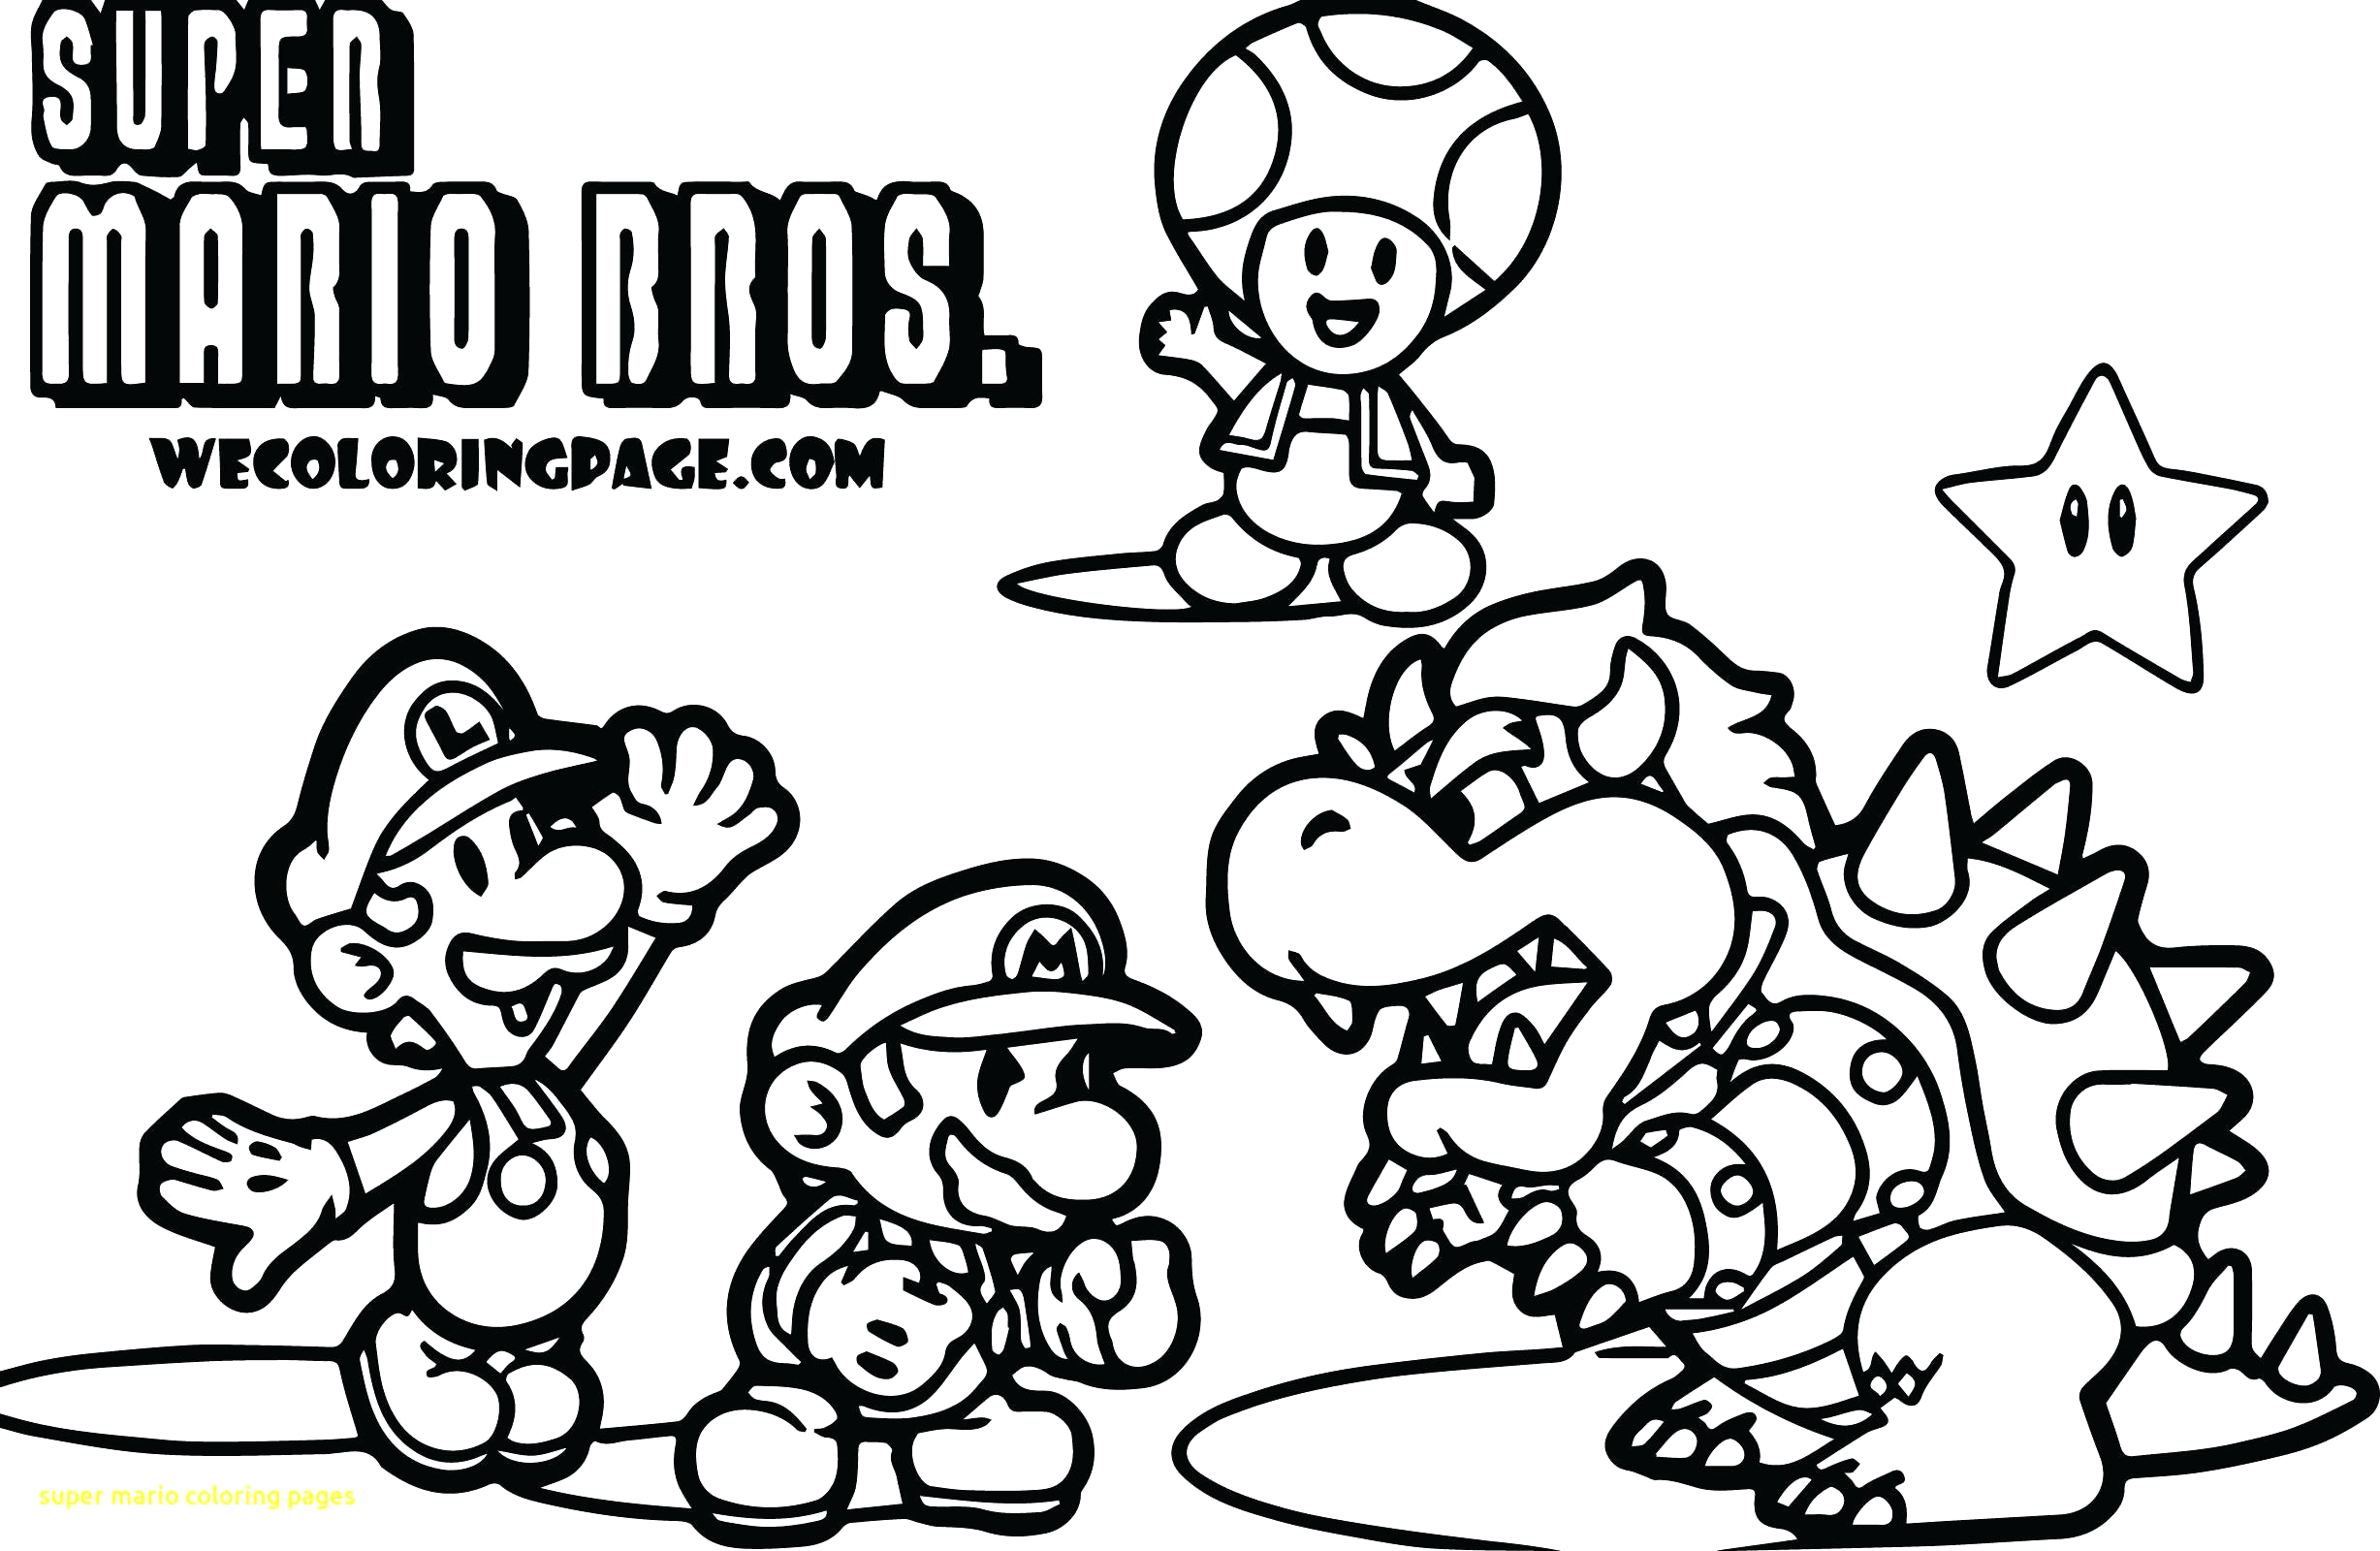 Super Mario 3d World Coloring Pages to Print Super Mario 3d World Coloring Pages at Getcolorings